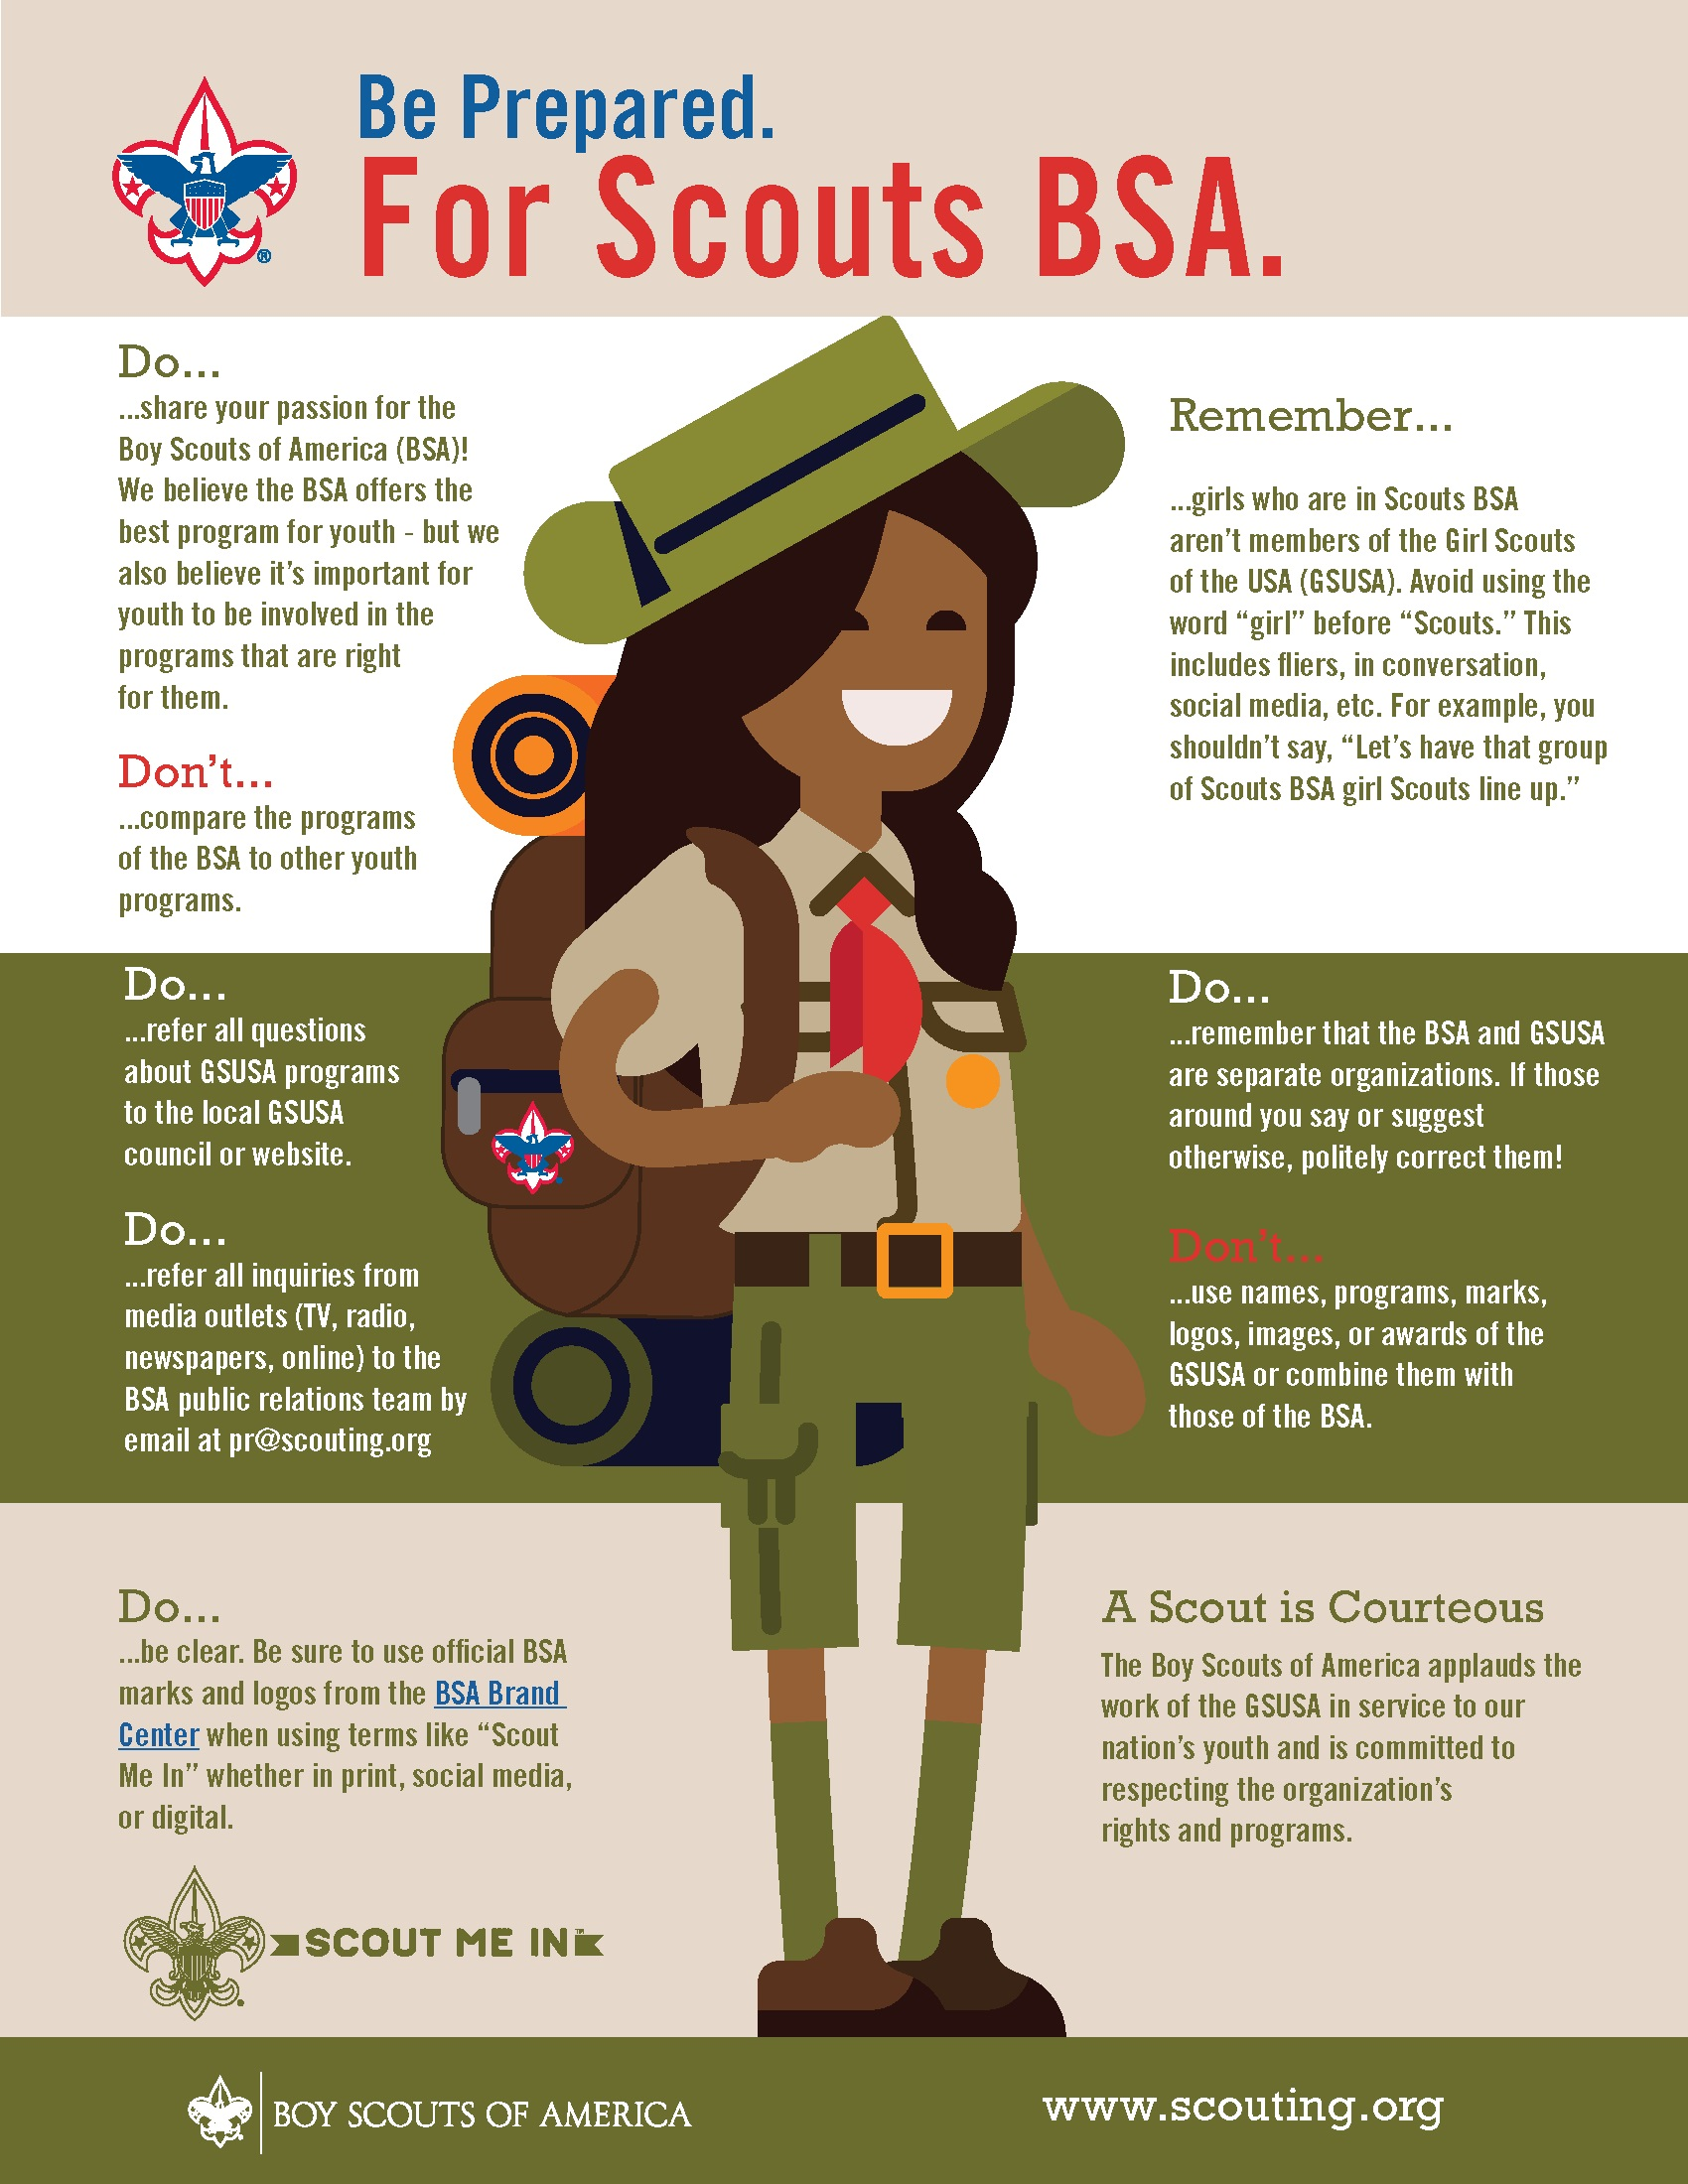 Scouts BSA Branding Dos and Donts